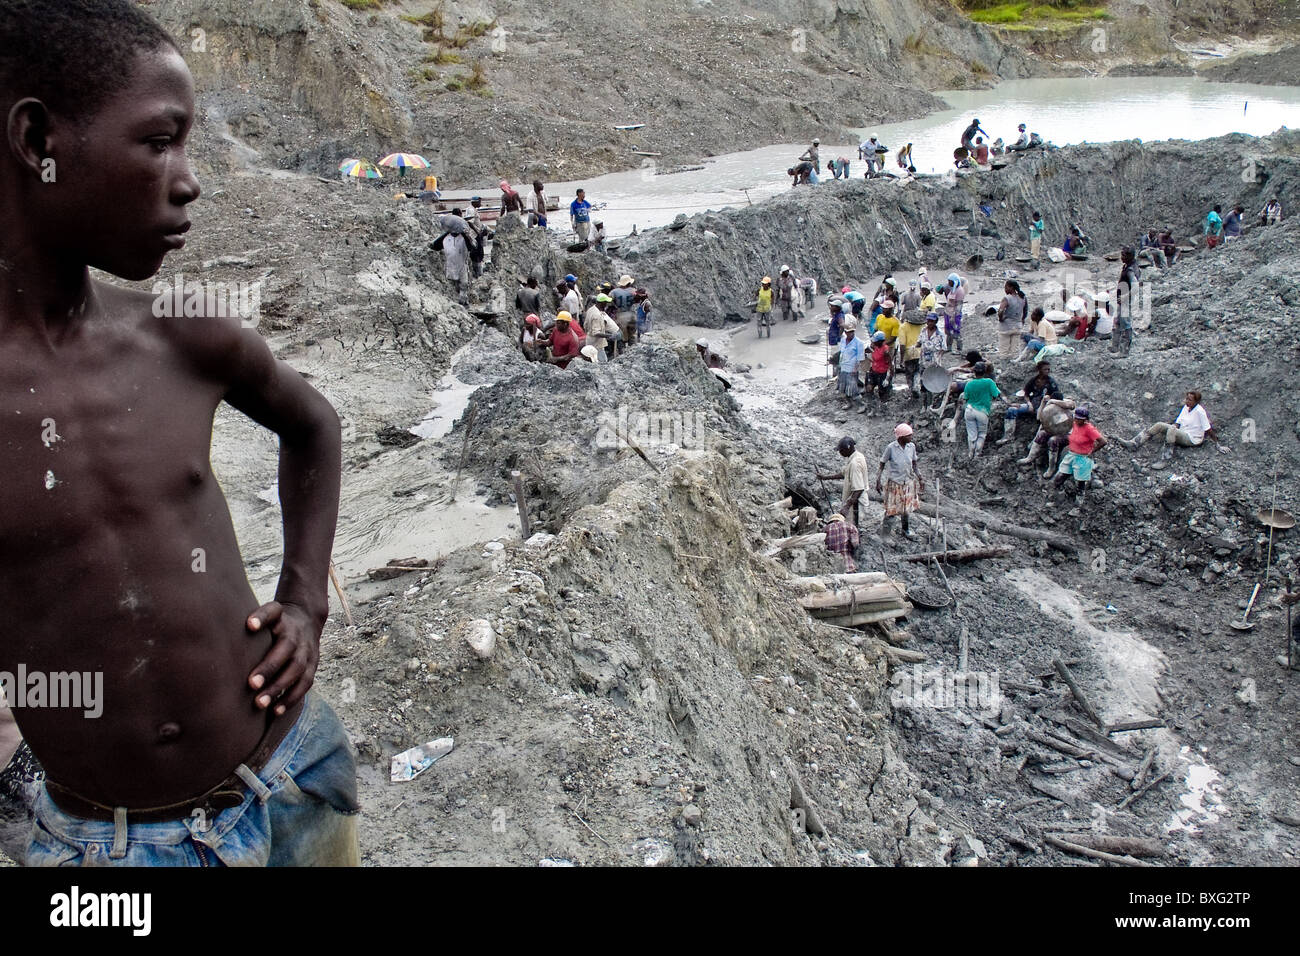 Gold mining leaves the Choco jungle (Colombia) environmentally damaged. - Stock Image